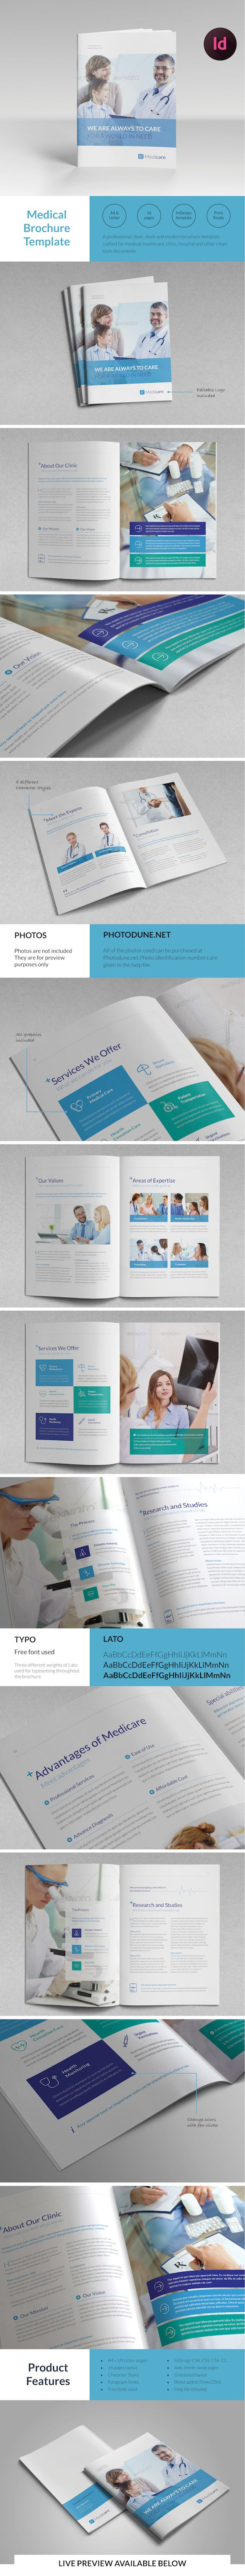 Medical Brochure on Behance